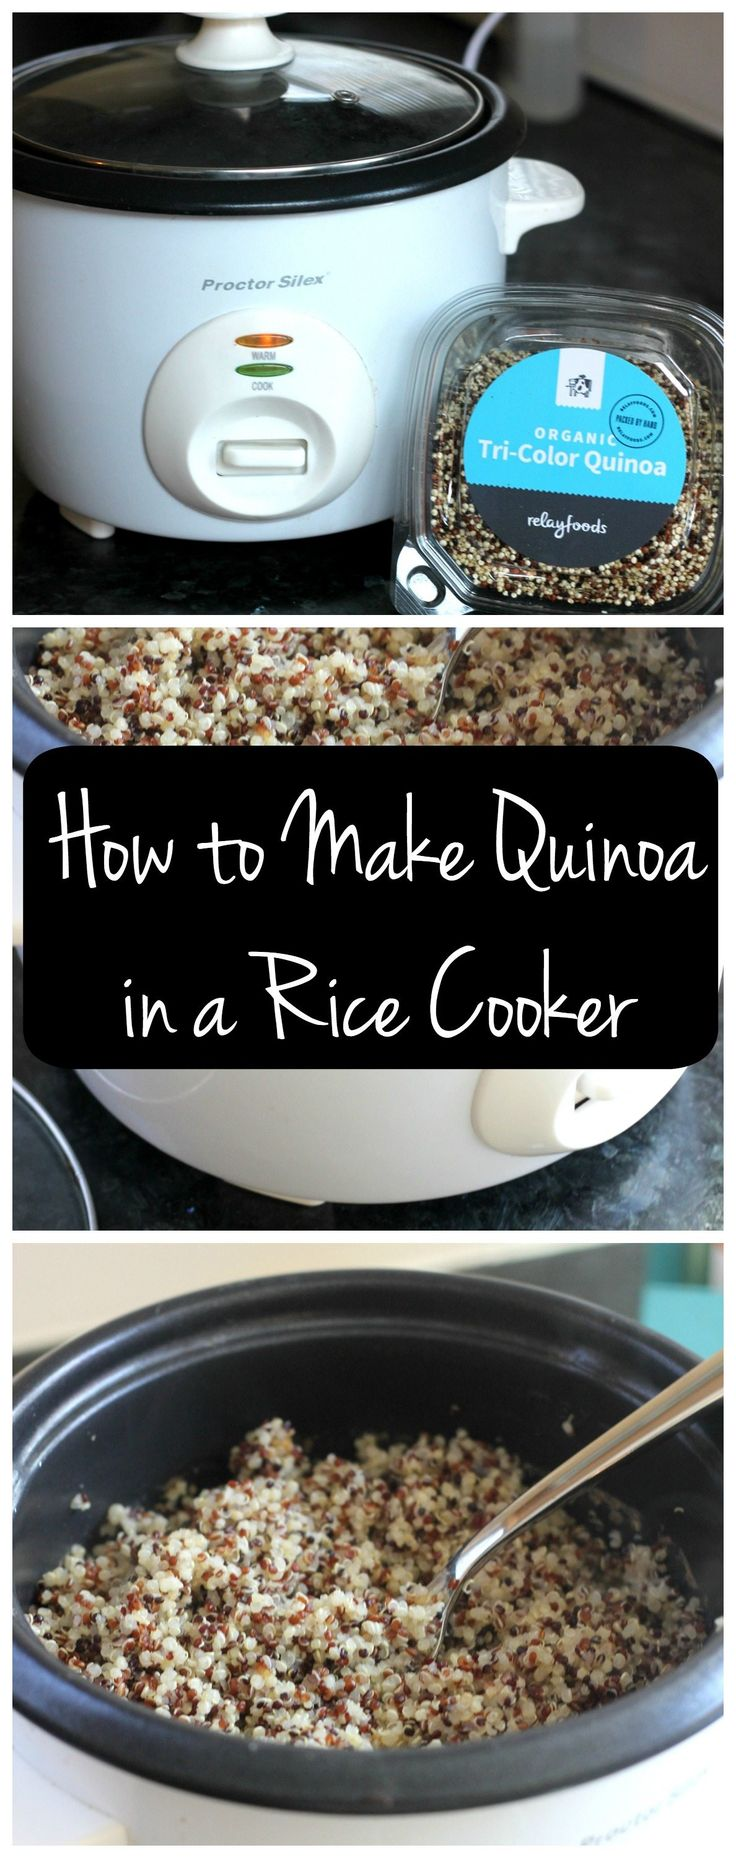 Did You Know You Can Use Your Rice Cooker For Cooking Quinoa? Yes! Here's